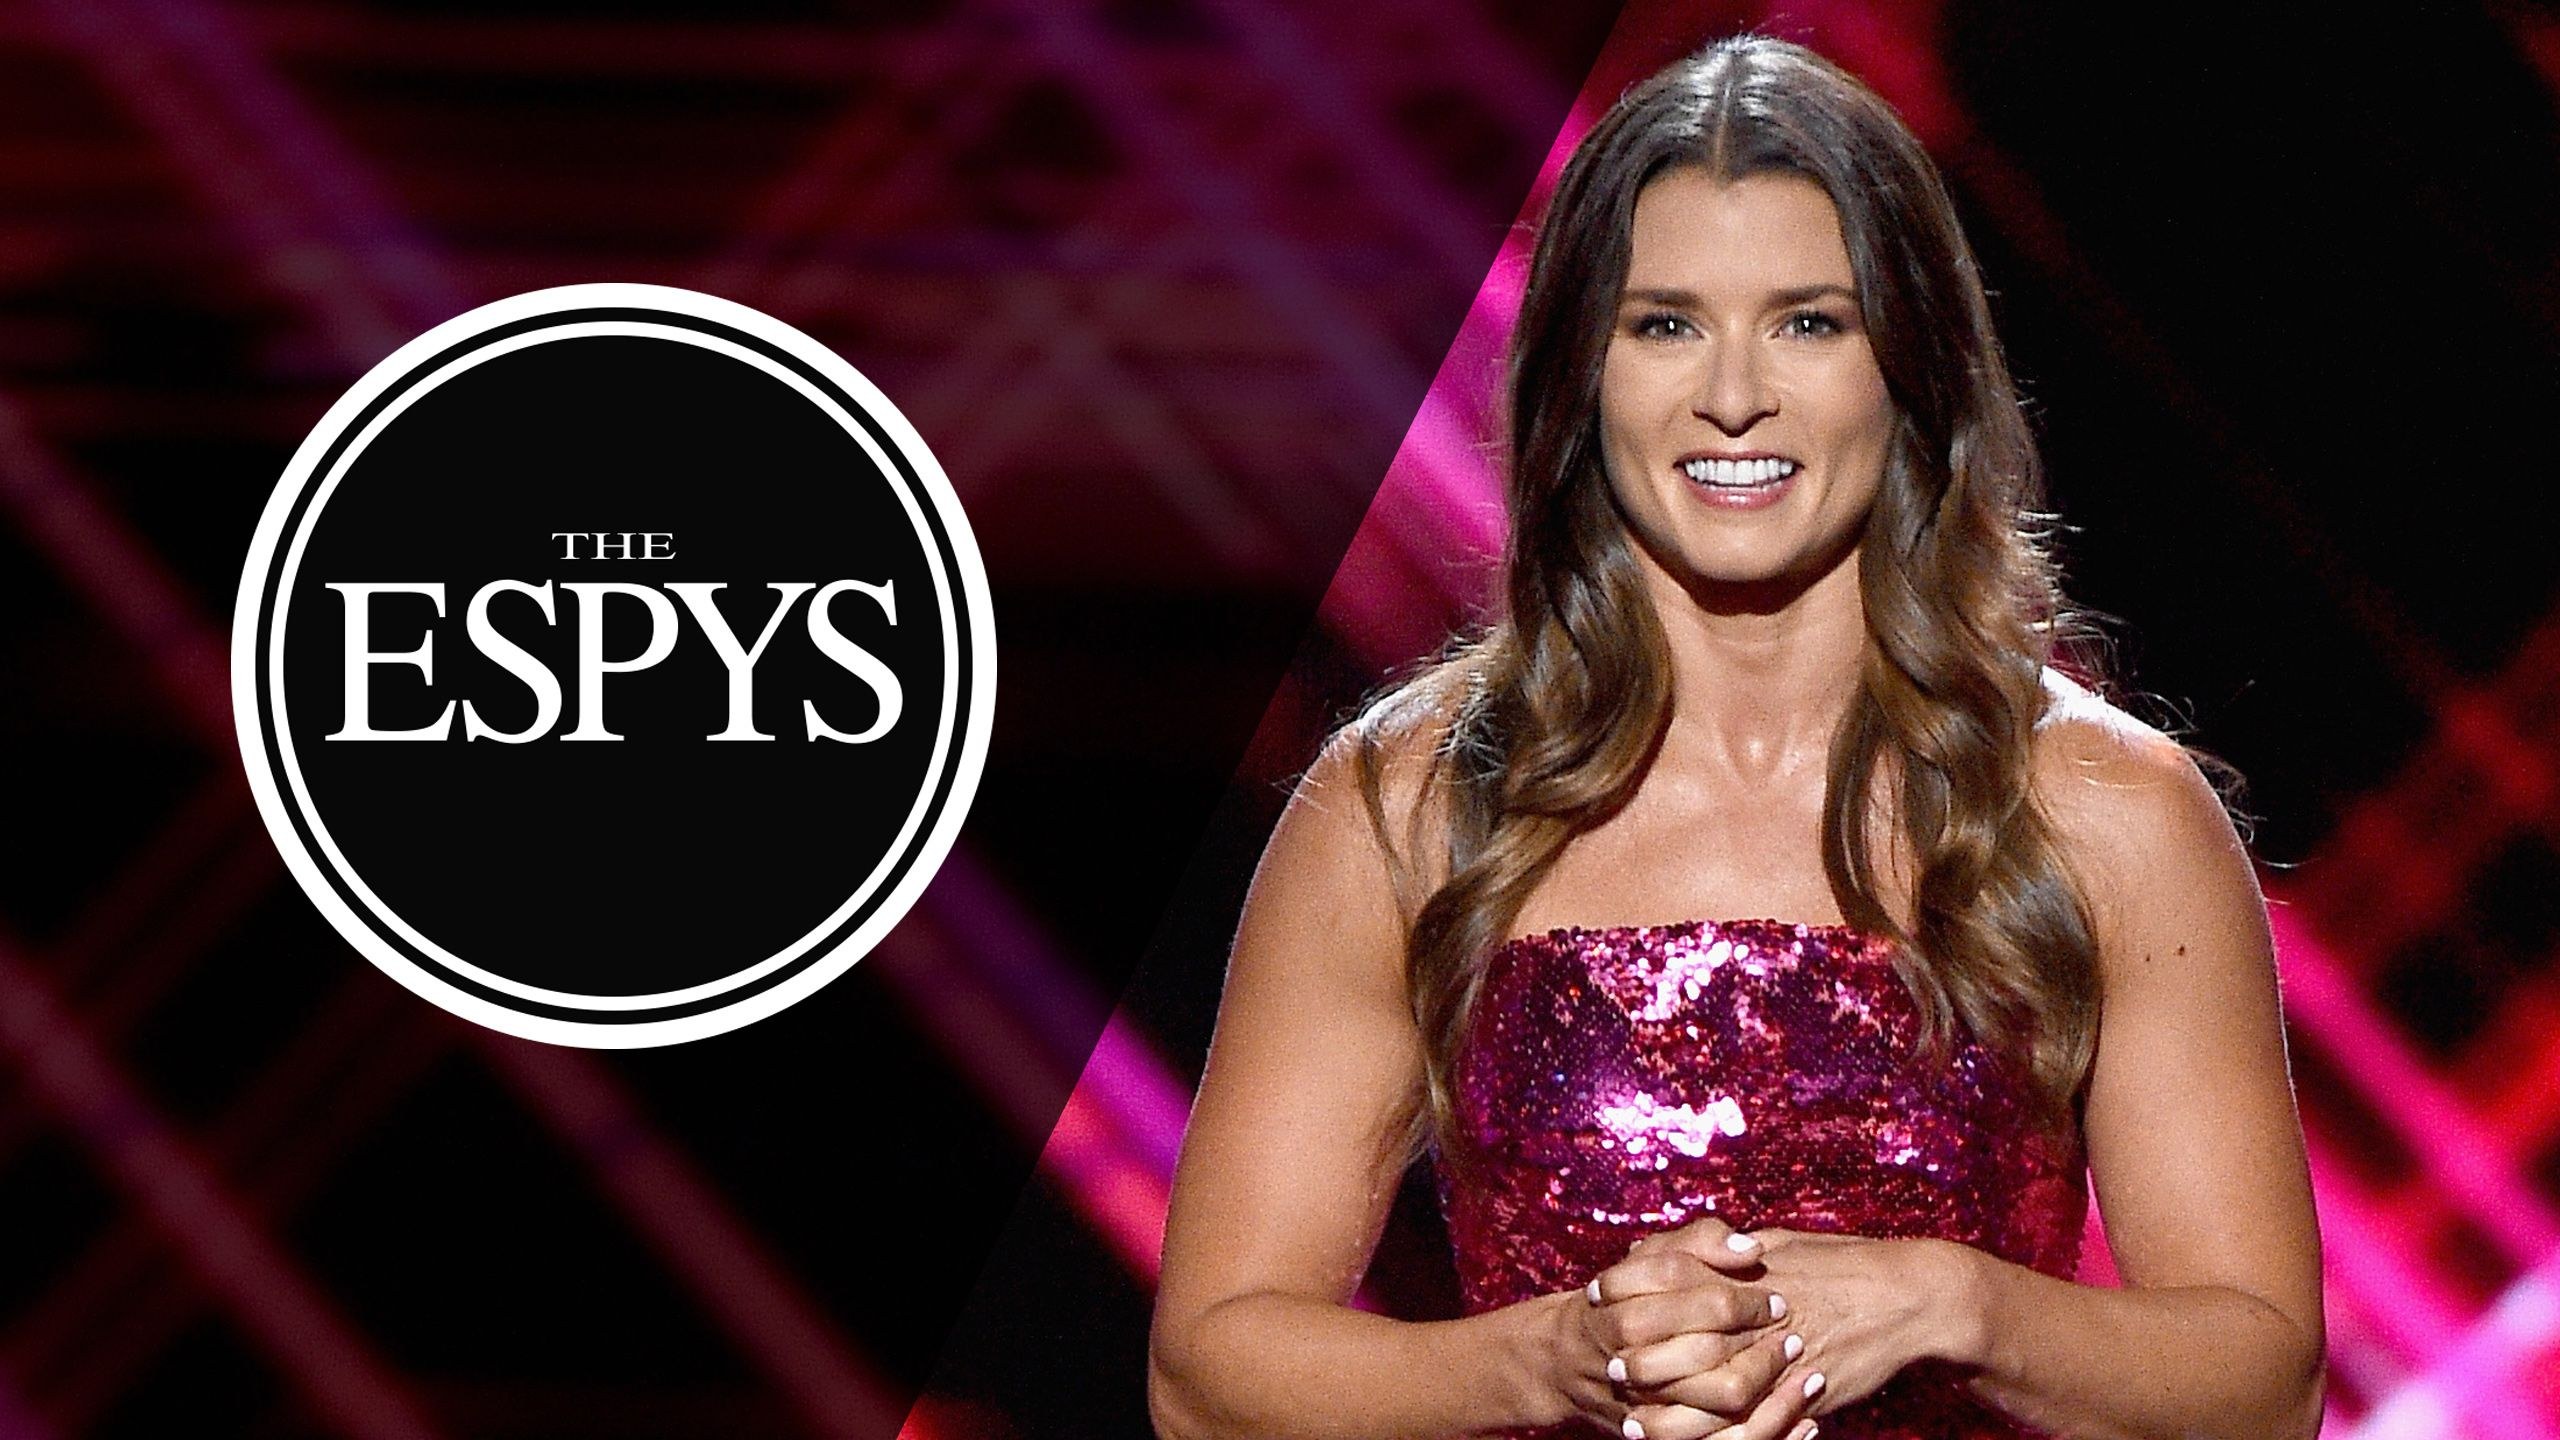 The 2018 ESPYS Presented by Capital One